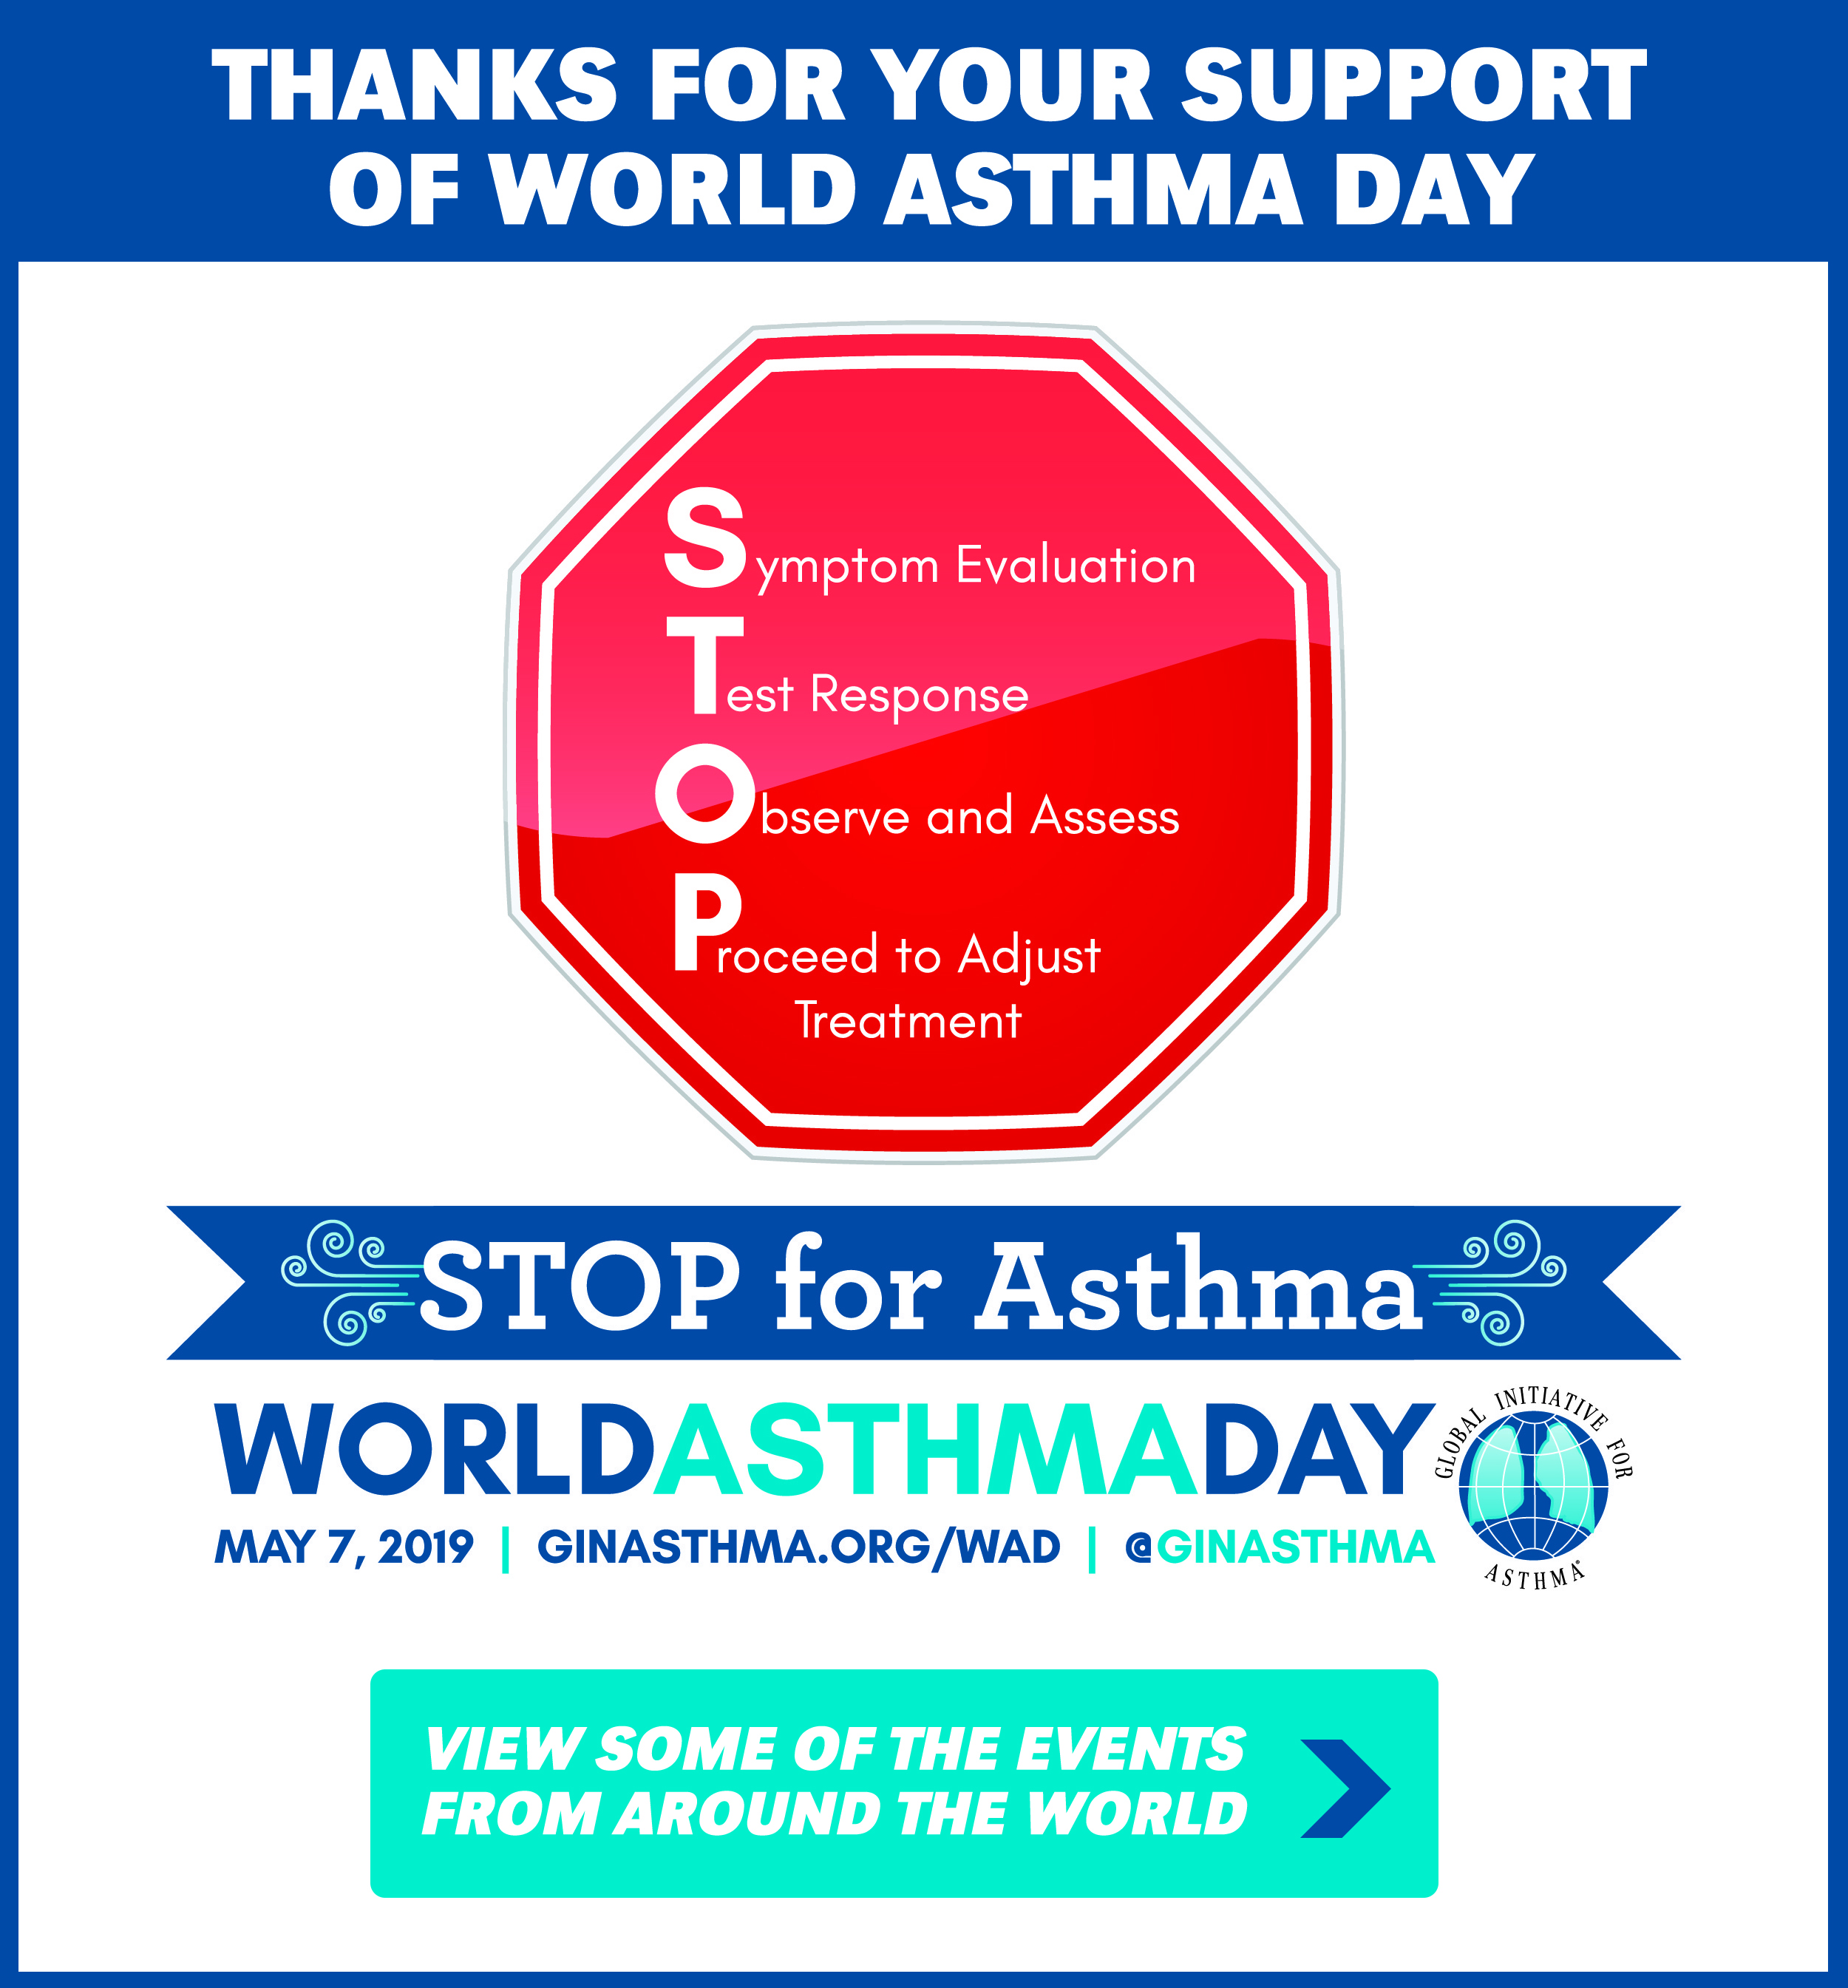 Global Initiative for Asthma - Global Initiative for Asthma